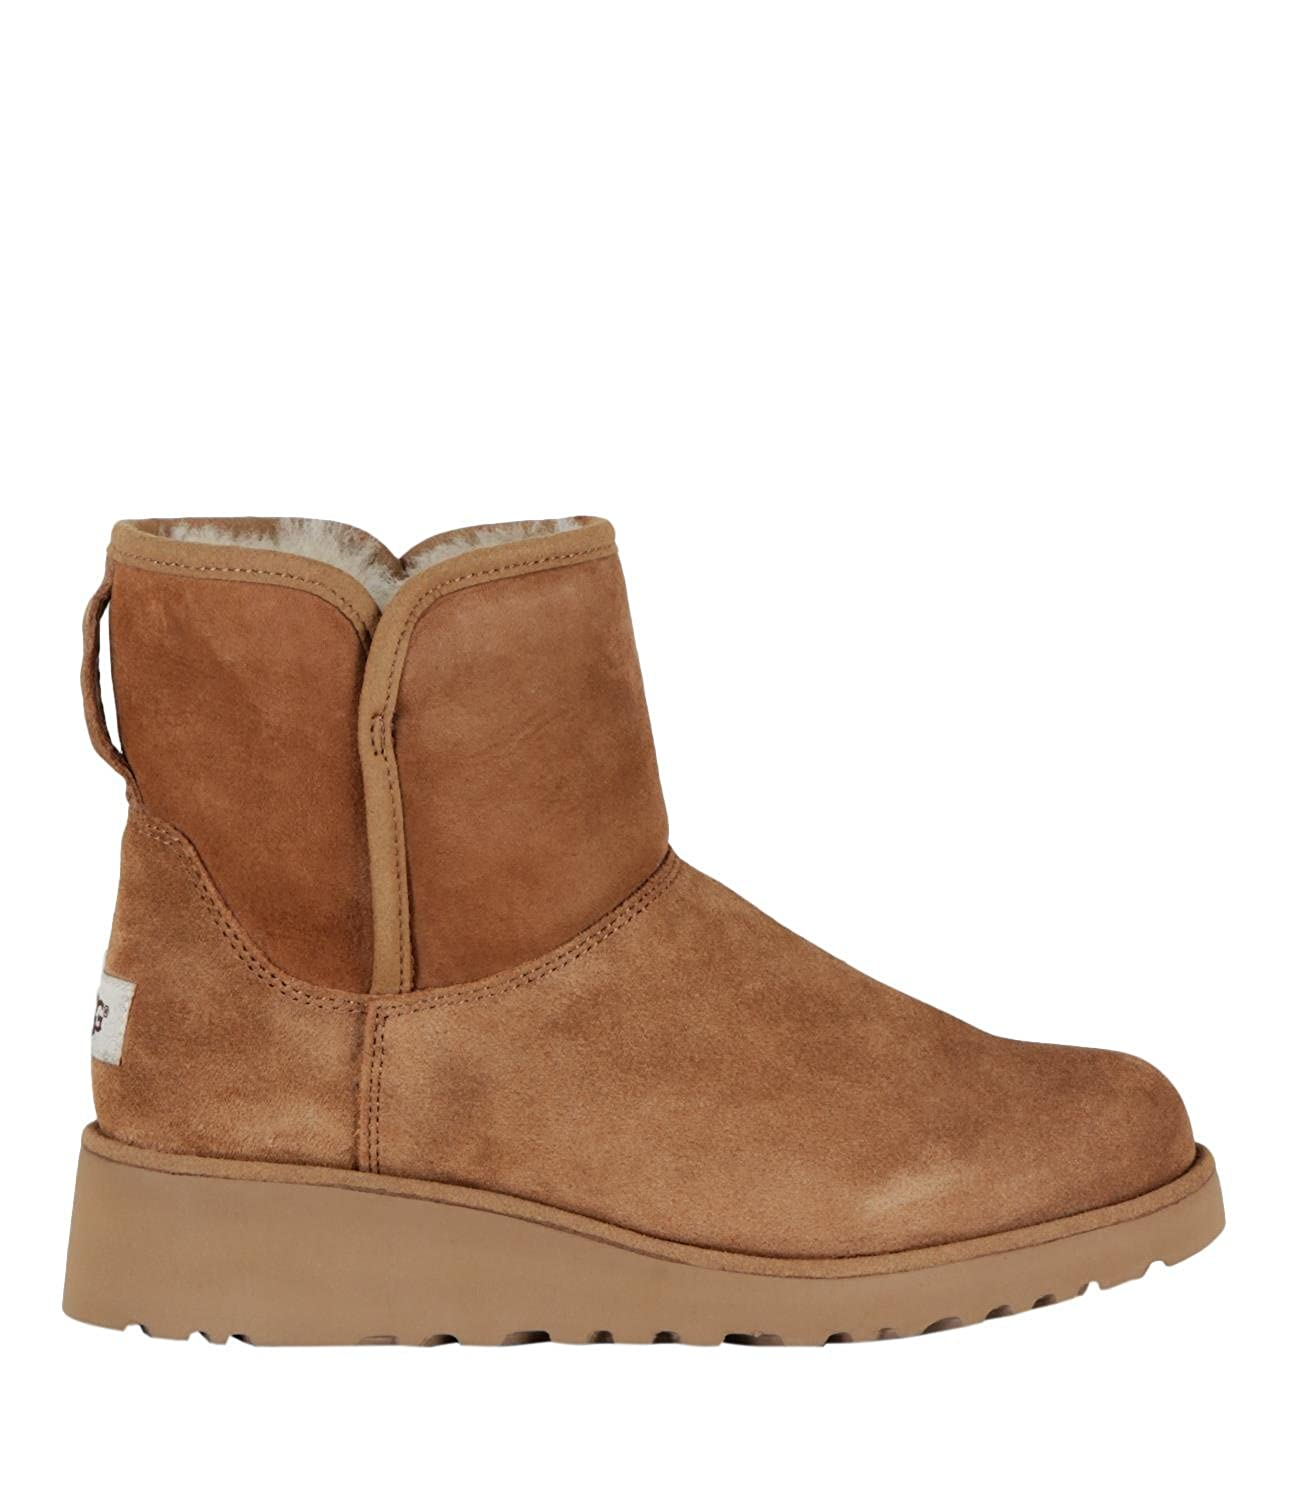 6bf0c07368d UGG Australia Women s Classic Slim Kristin Hi-Top Sneakers  Amazon.co.uk   Shoes   Bags